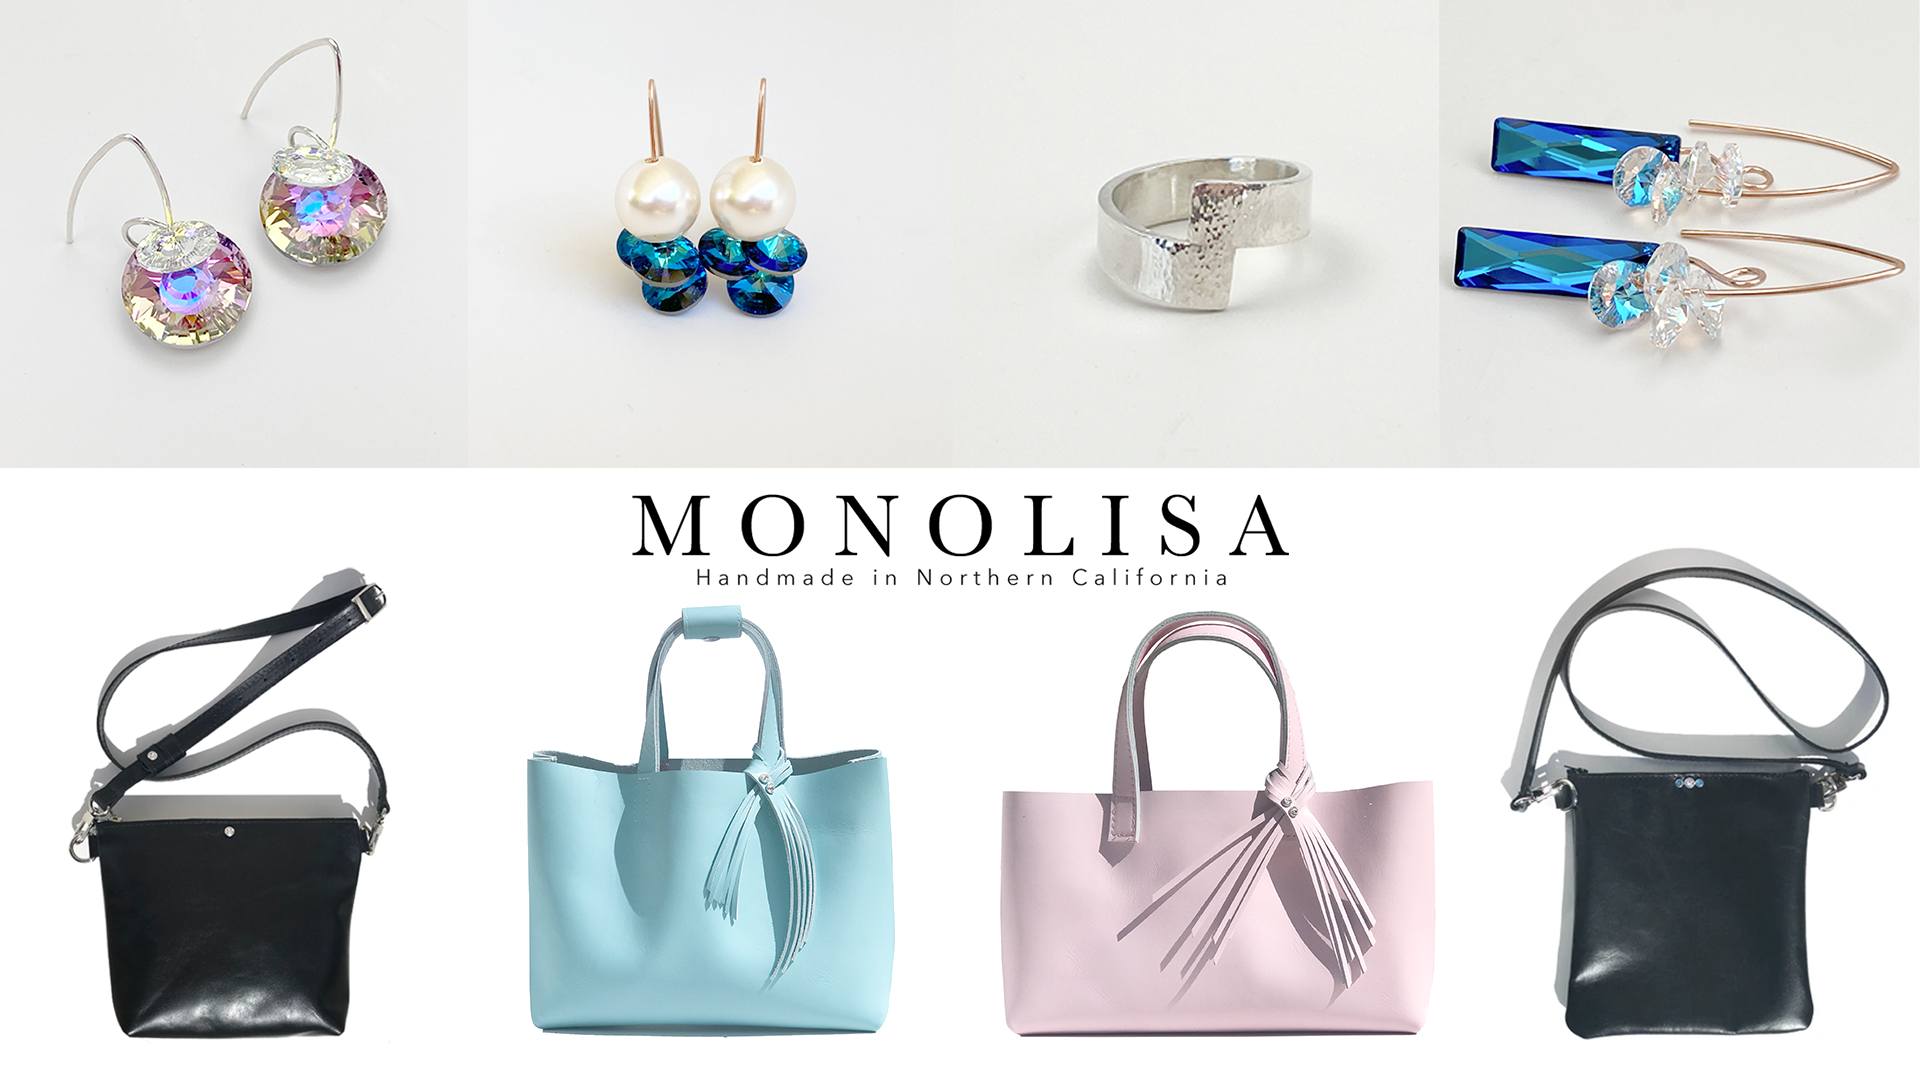 2020 California Events Featuring MONOLISA - Fine Art Events, Festivals, Markets and Jewelry Shows